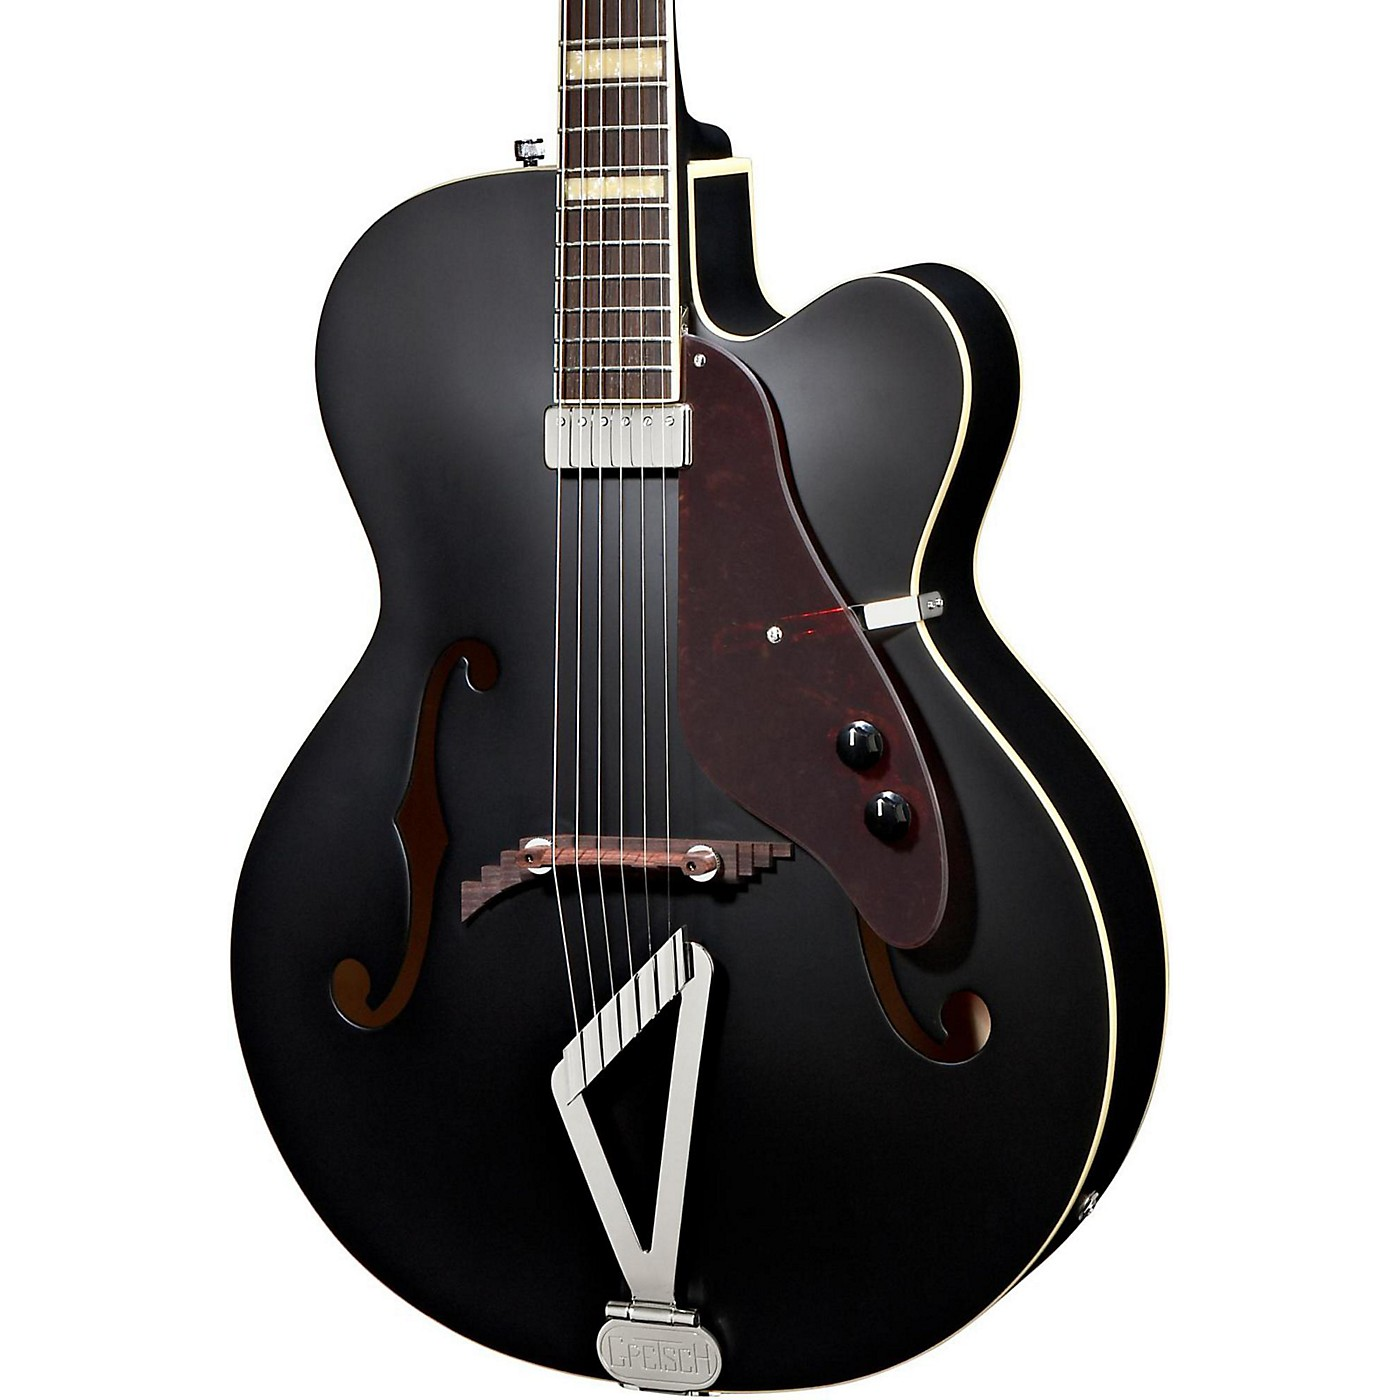 Gretsch Guitars G100CE Synchromatic Archtop Electric Guitar thumbnail